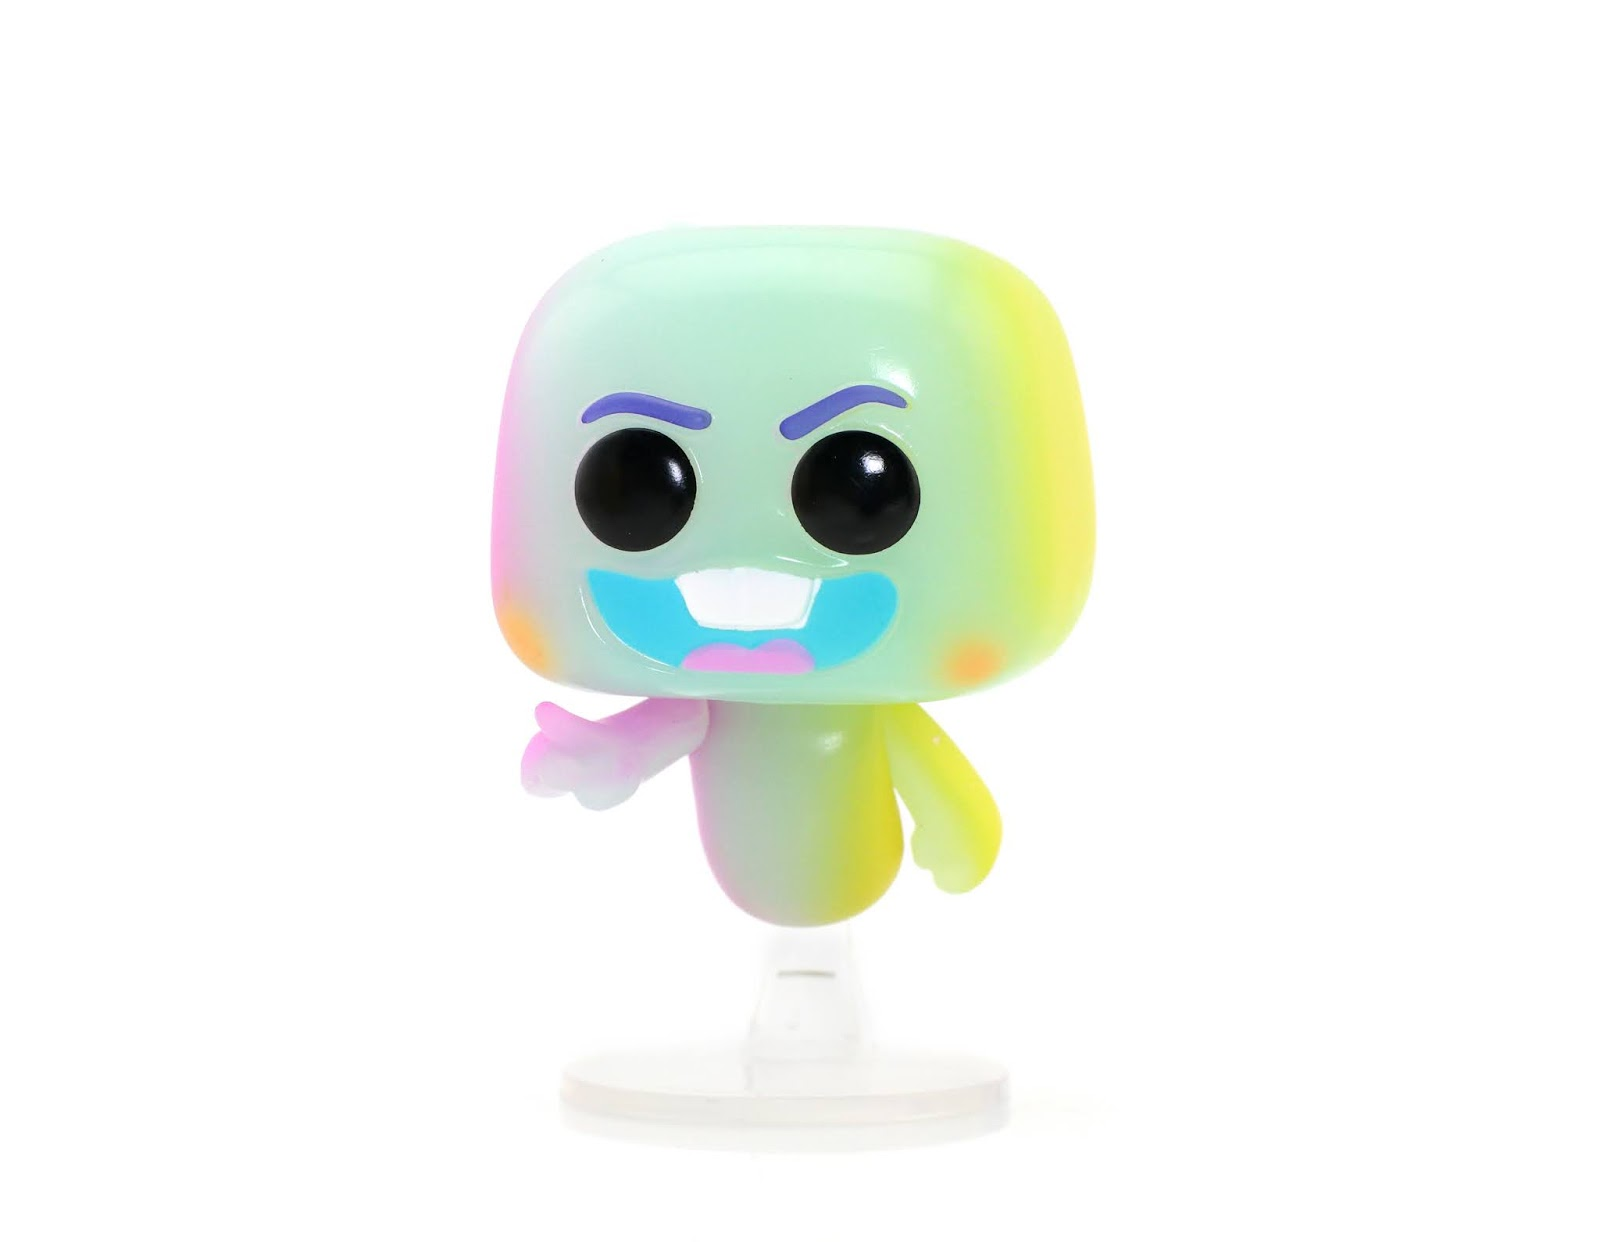 pixar soul funko pop 22 review